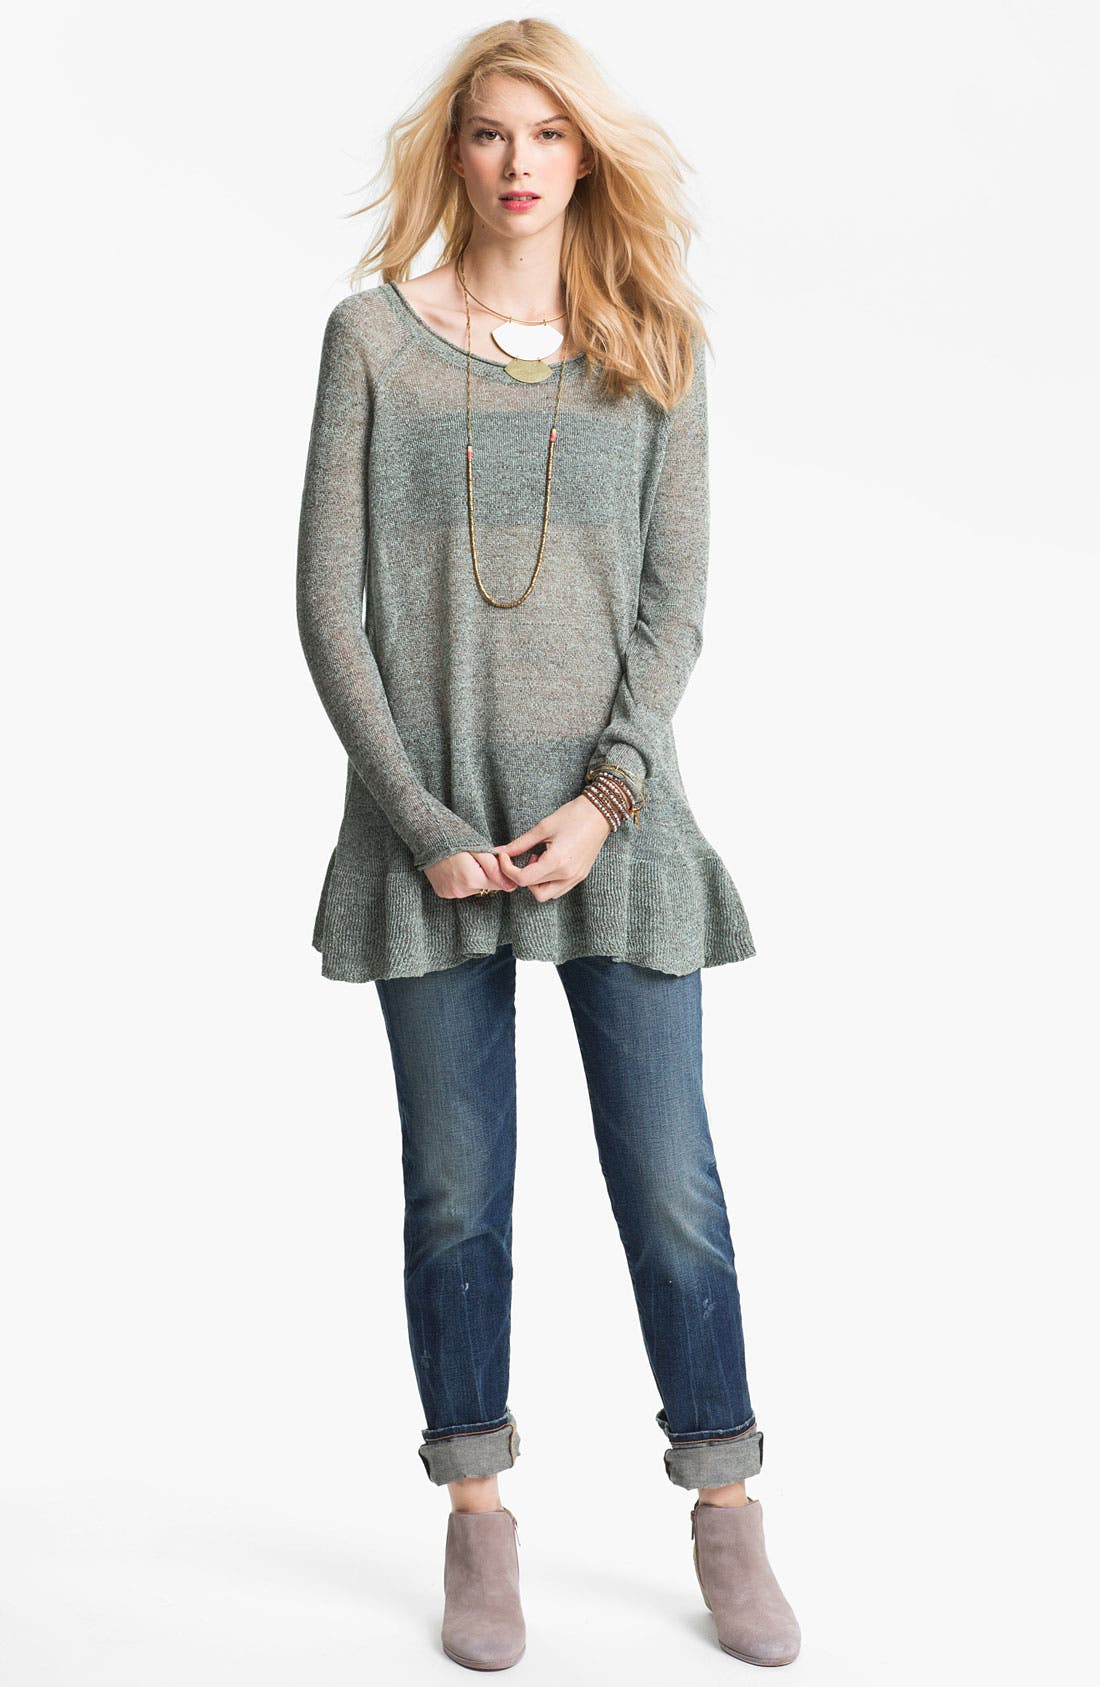 Alternate Image 1 Selected - Free People Sheer Linen Tunic Sweater